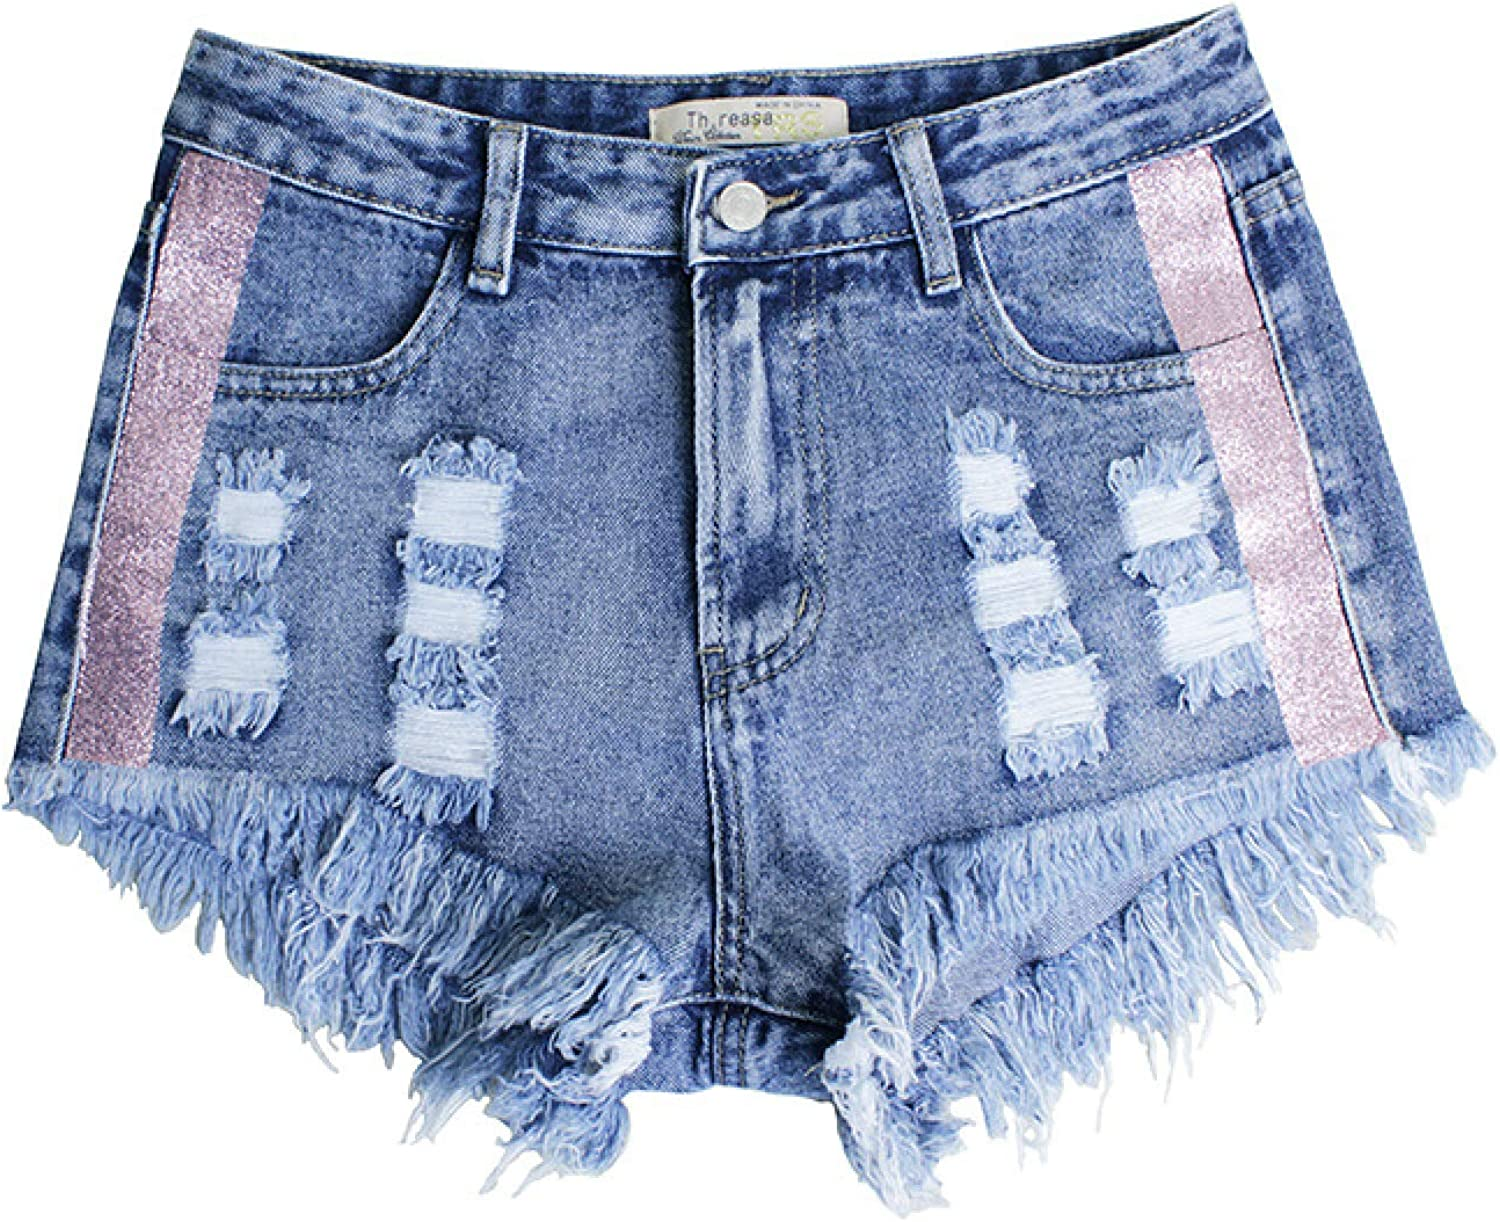 Ladies Ripped Denim Shorts Fashion Torn Edge Double Pockets Tight-Fitting